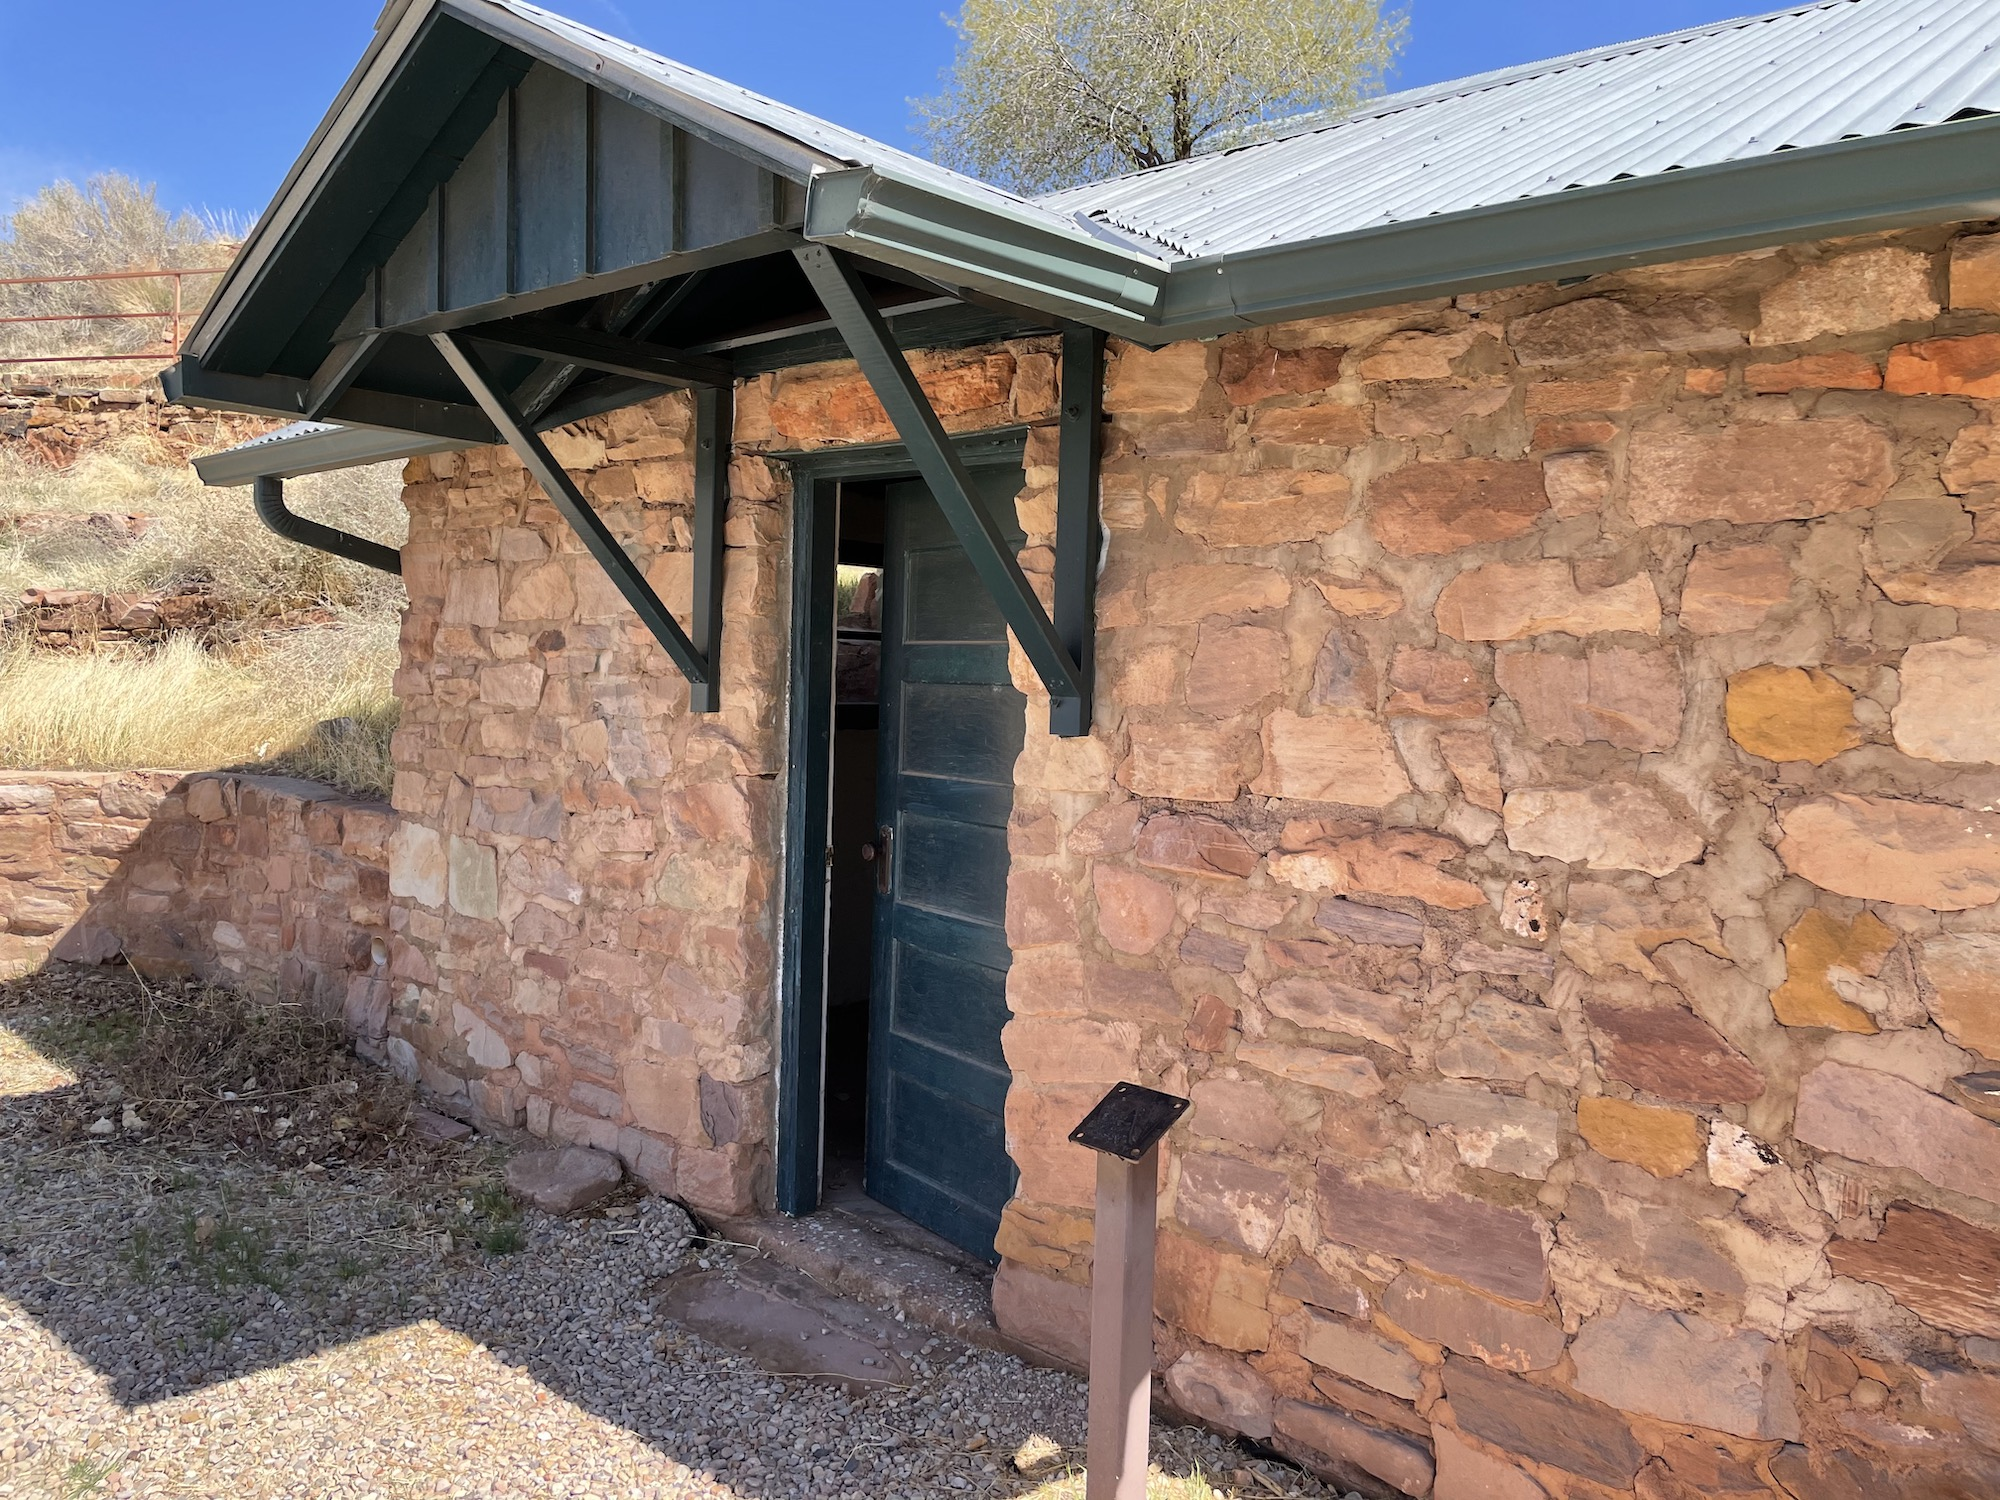 Building at the Civilian Conservation Corp Camp in Leeds